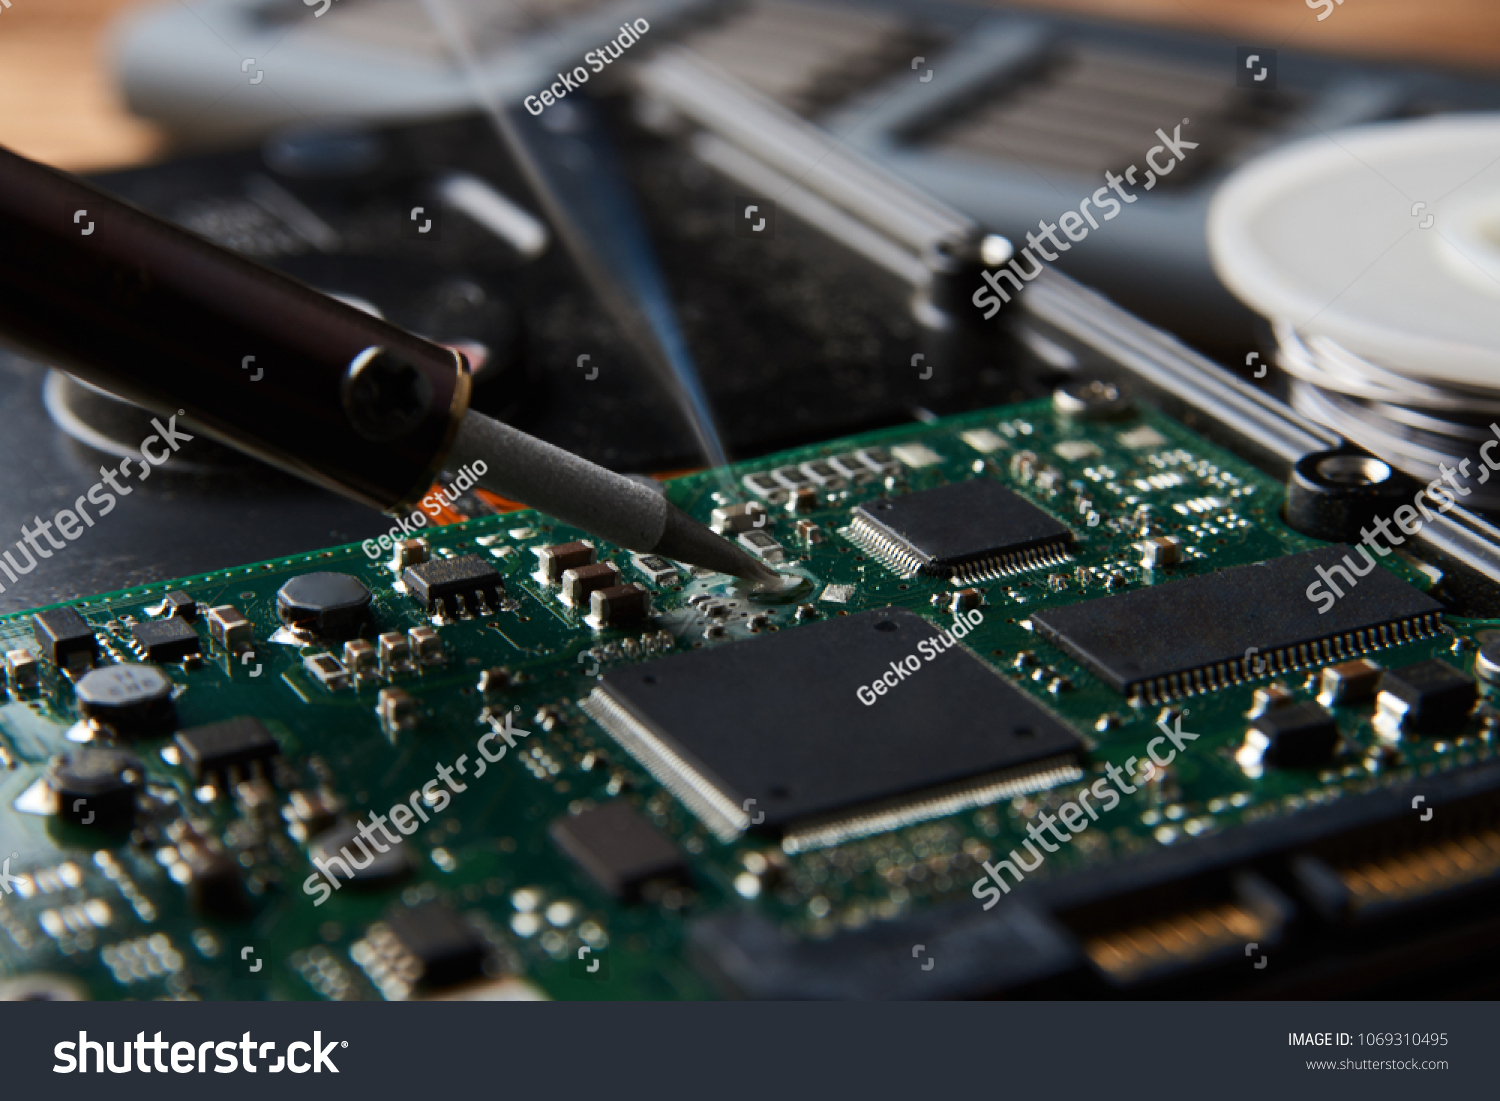 Closeup Soldering Electronic Circuit Board Stock Photo Repair Of Manufacturing And Concept With Iron